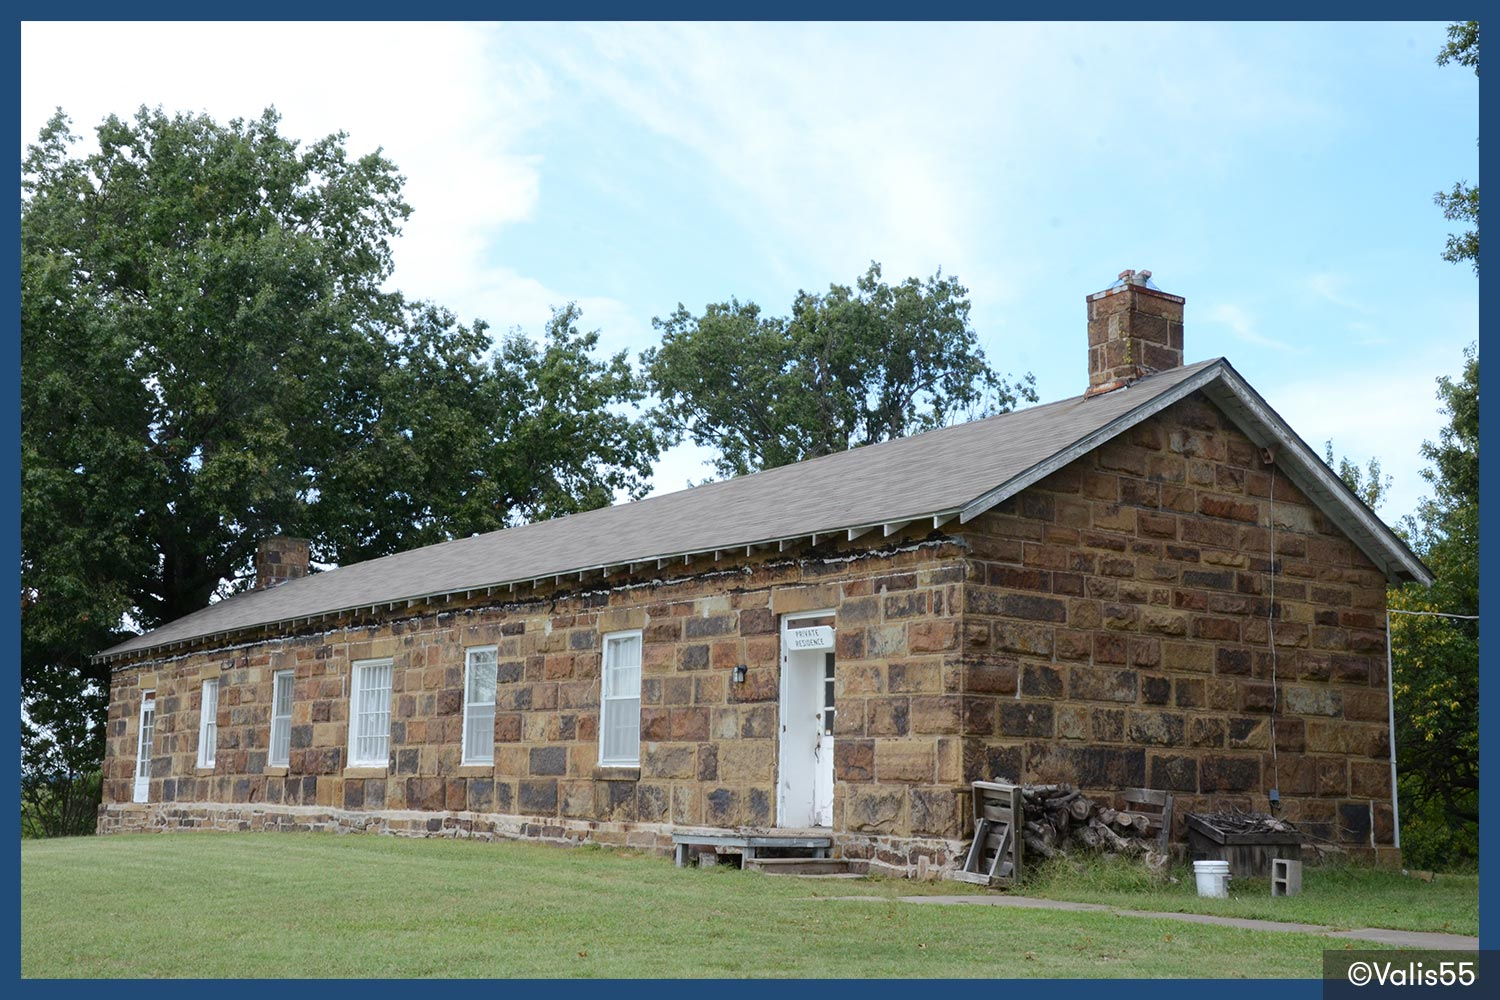 Fort Gibson in Oklahoma